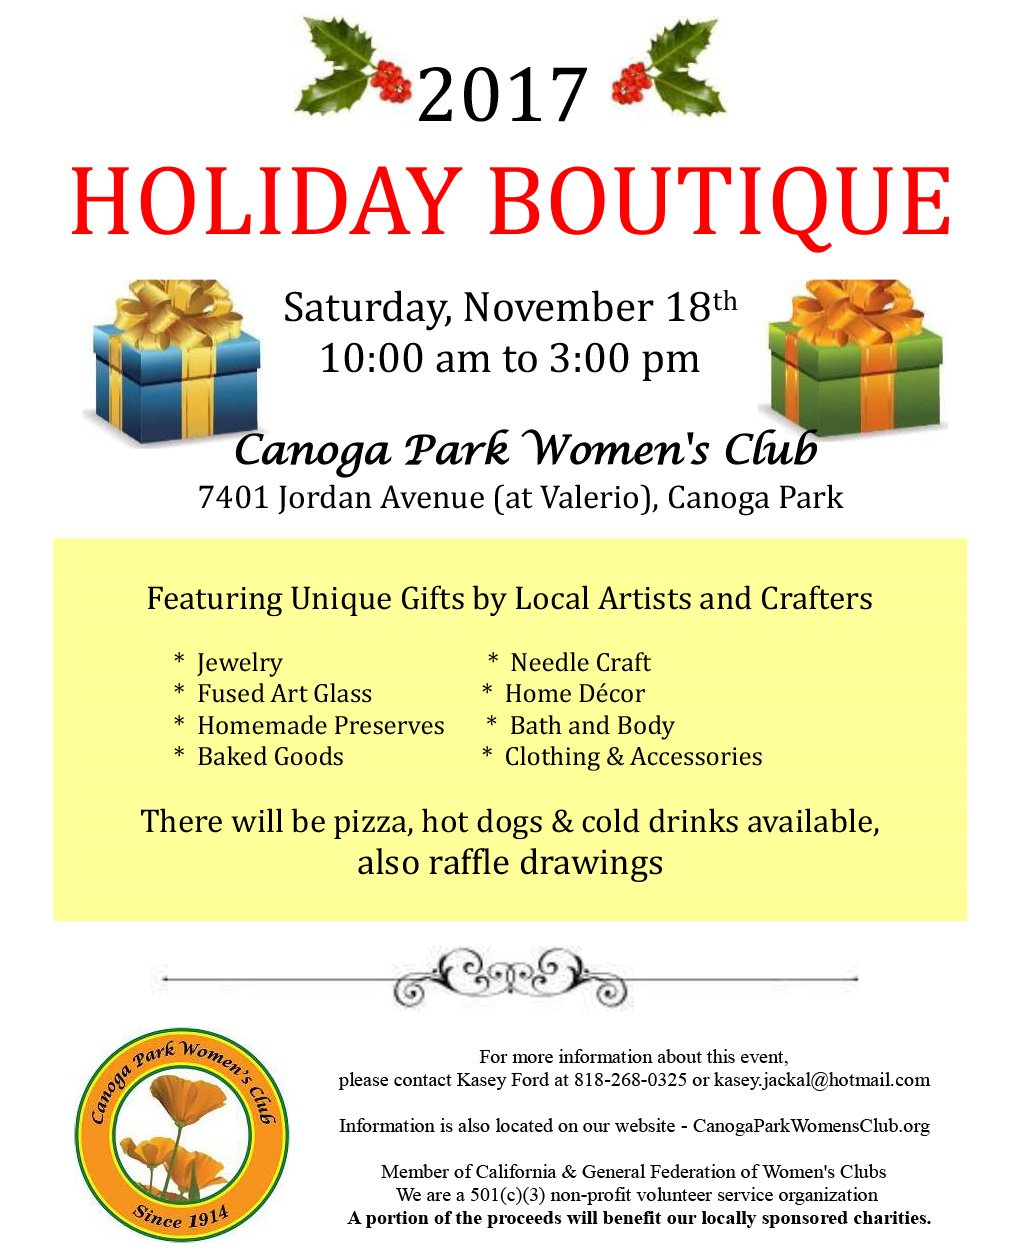 Canoga Park Women's Club 2017 Holiday Boutique